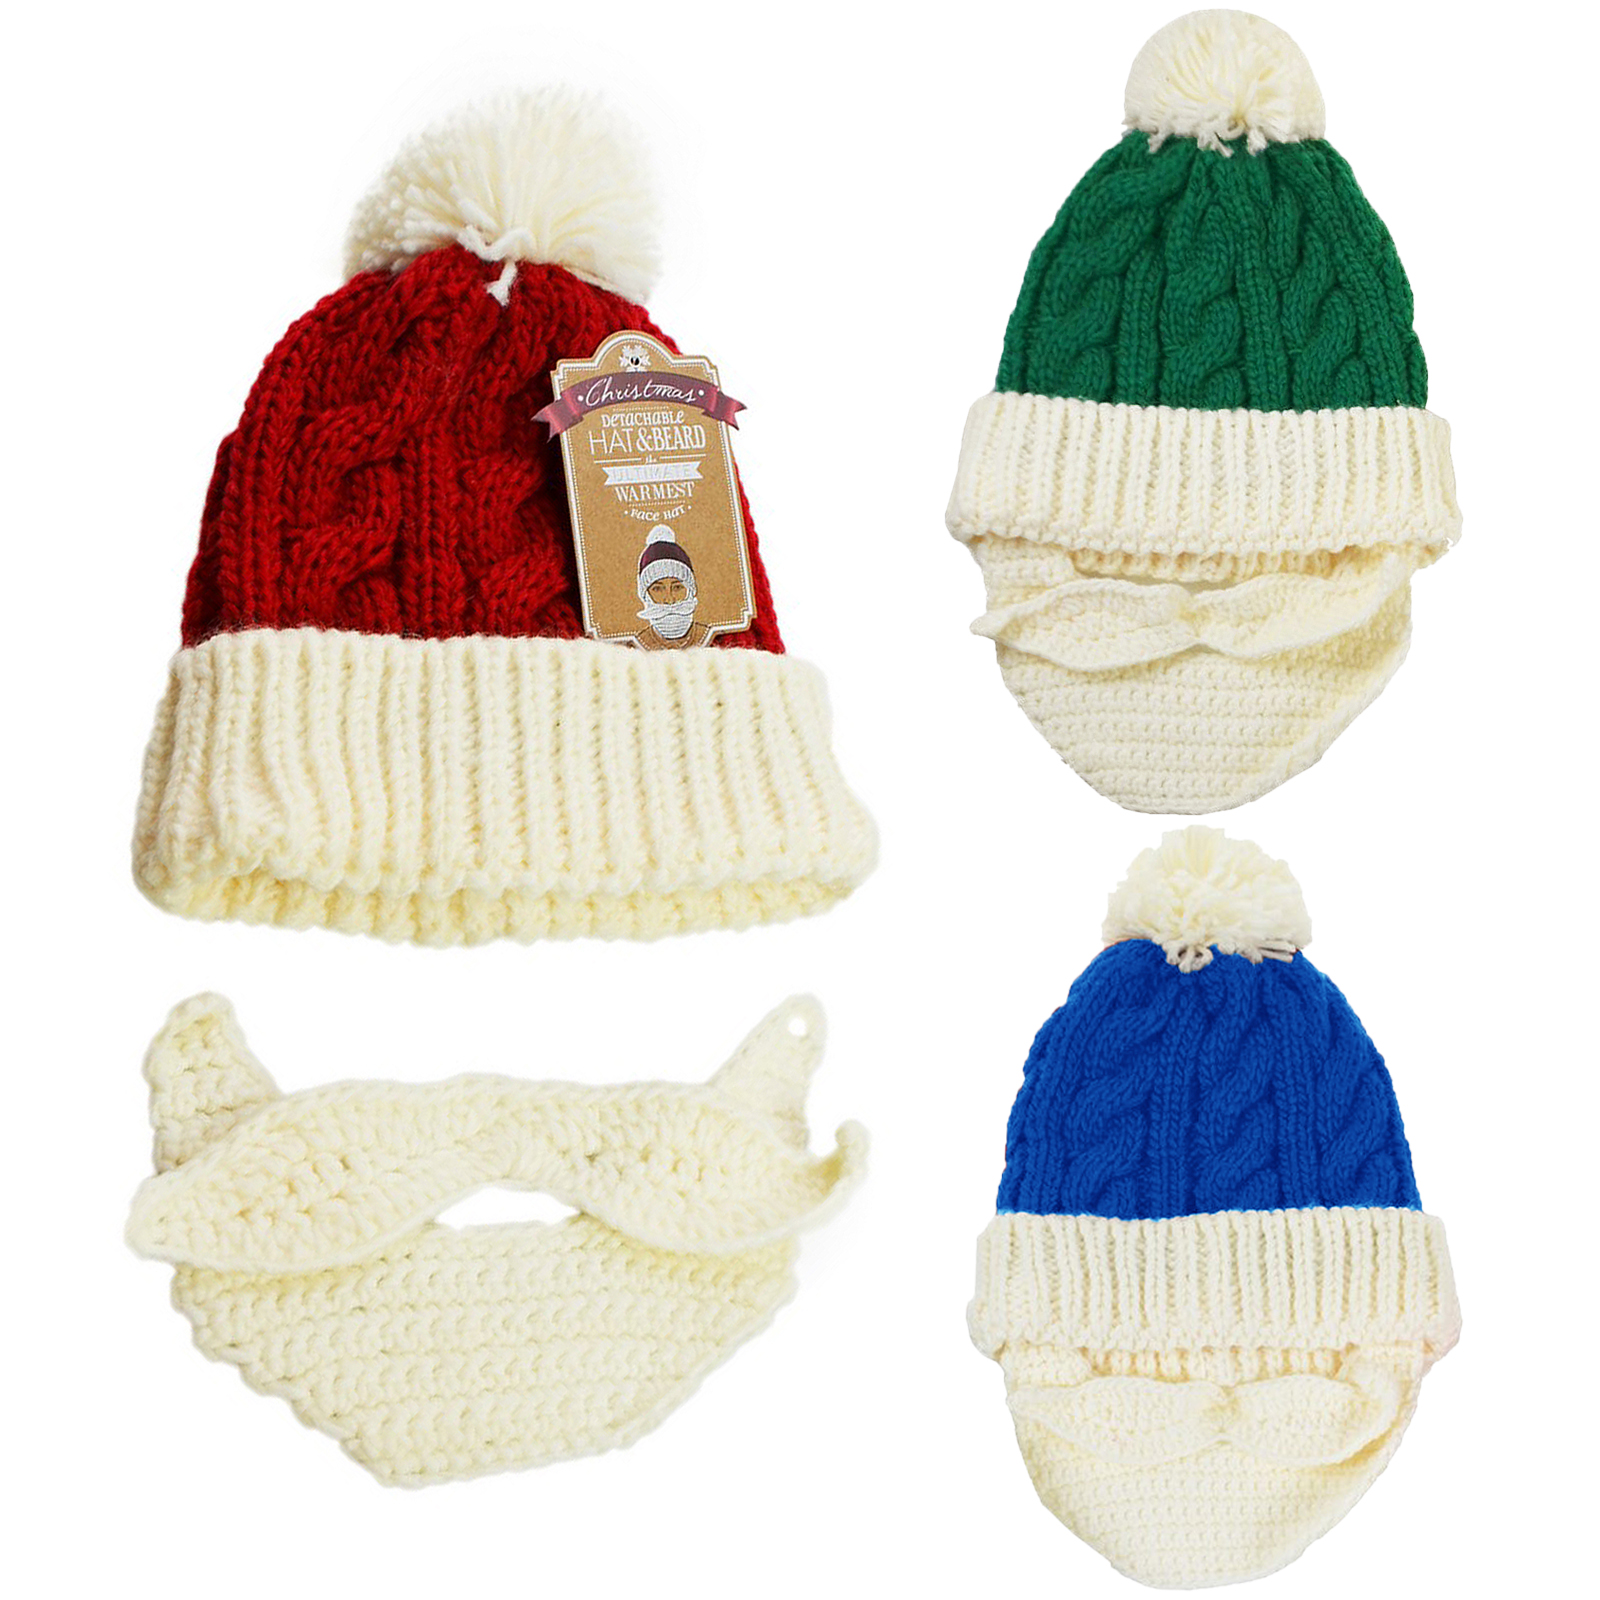 Details about Novelty Chunky Cable Knitted Luxury Santa Hat With Detachable  Beard Face Warmer 7c97ebc030b2